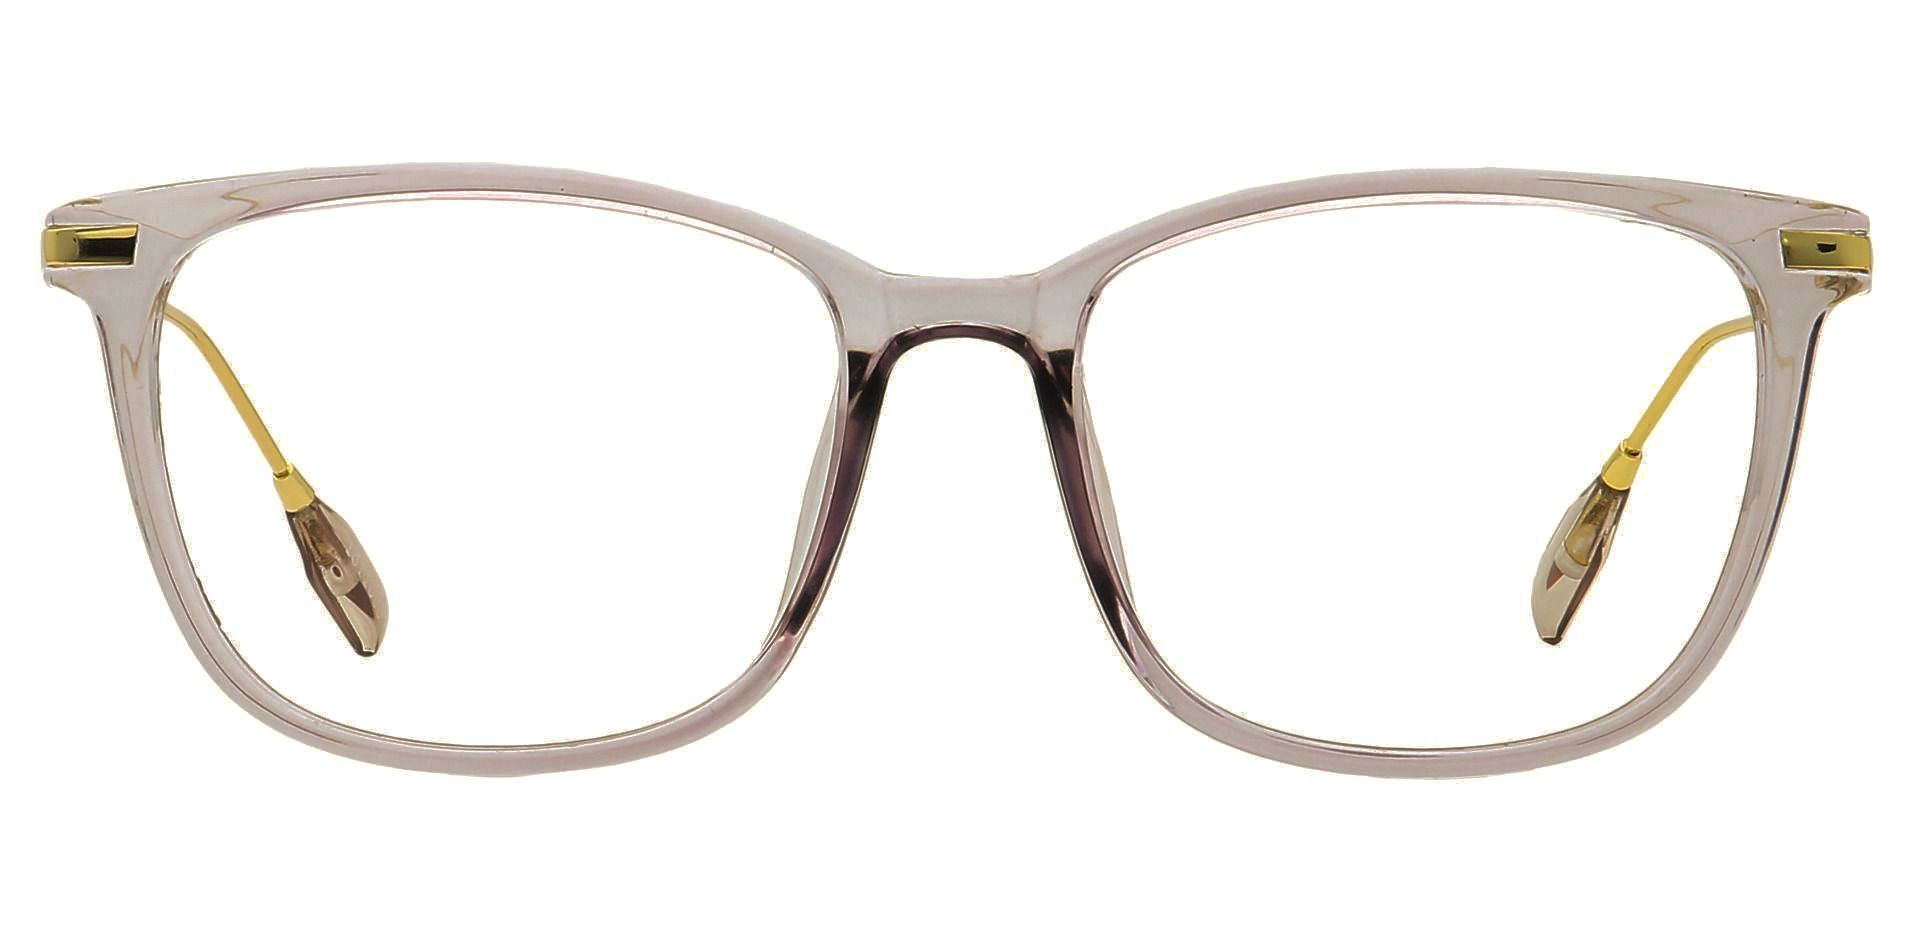 Katie Oval Blue Light Blocking Glasses - The Frame Is Clear With Light Purple